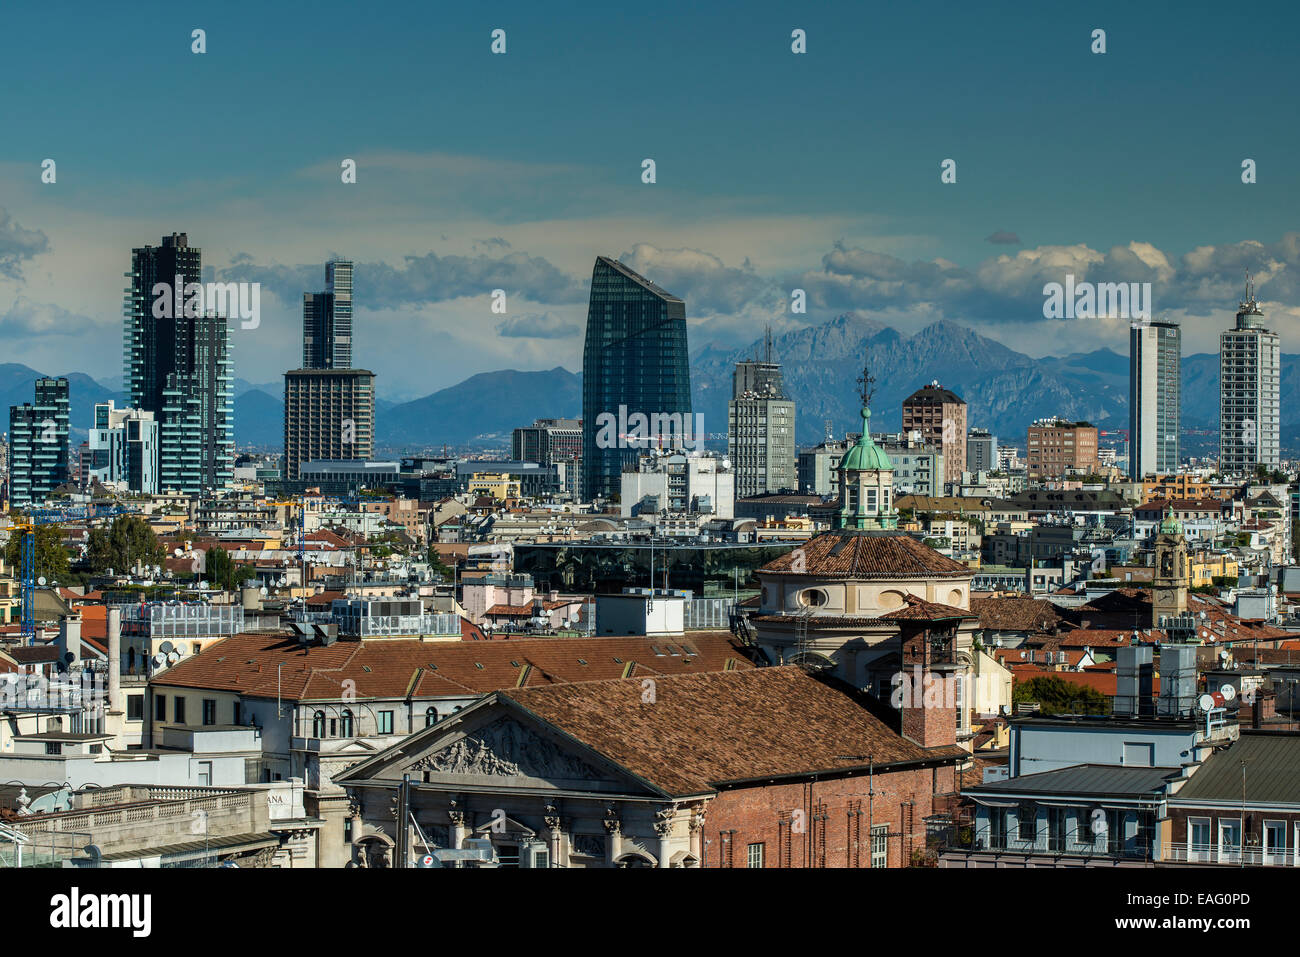 City skyline with the Alps in the background, Milan, Lombardy, Italy - Stock Image